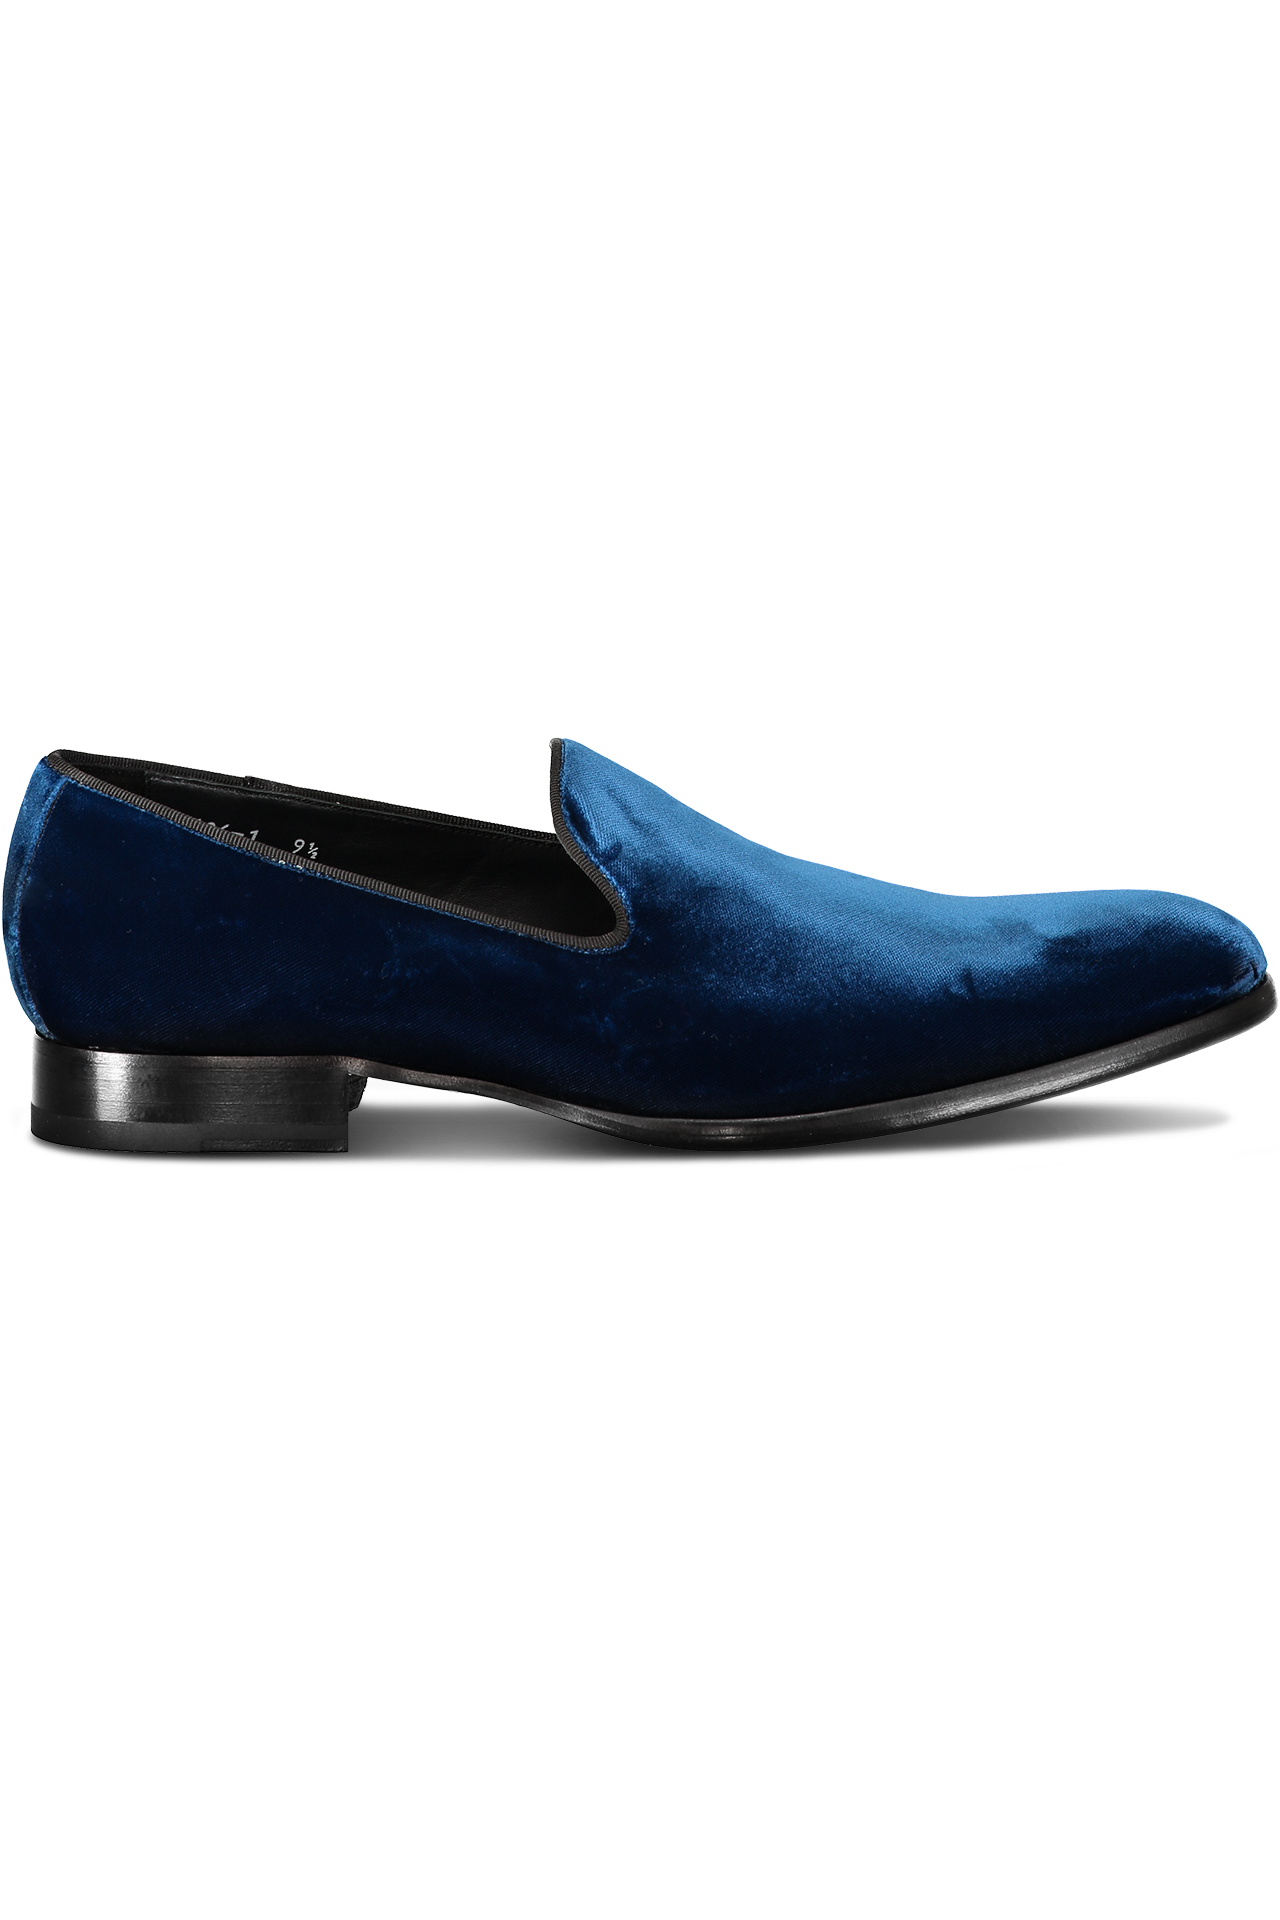 Formal Velvet Loafer Navy